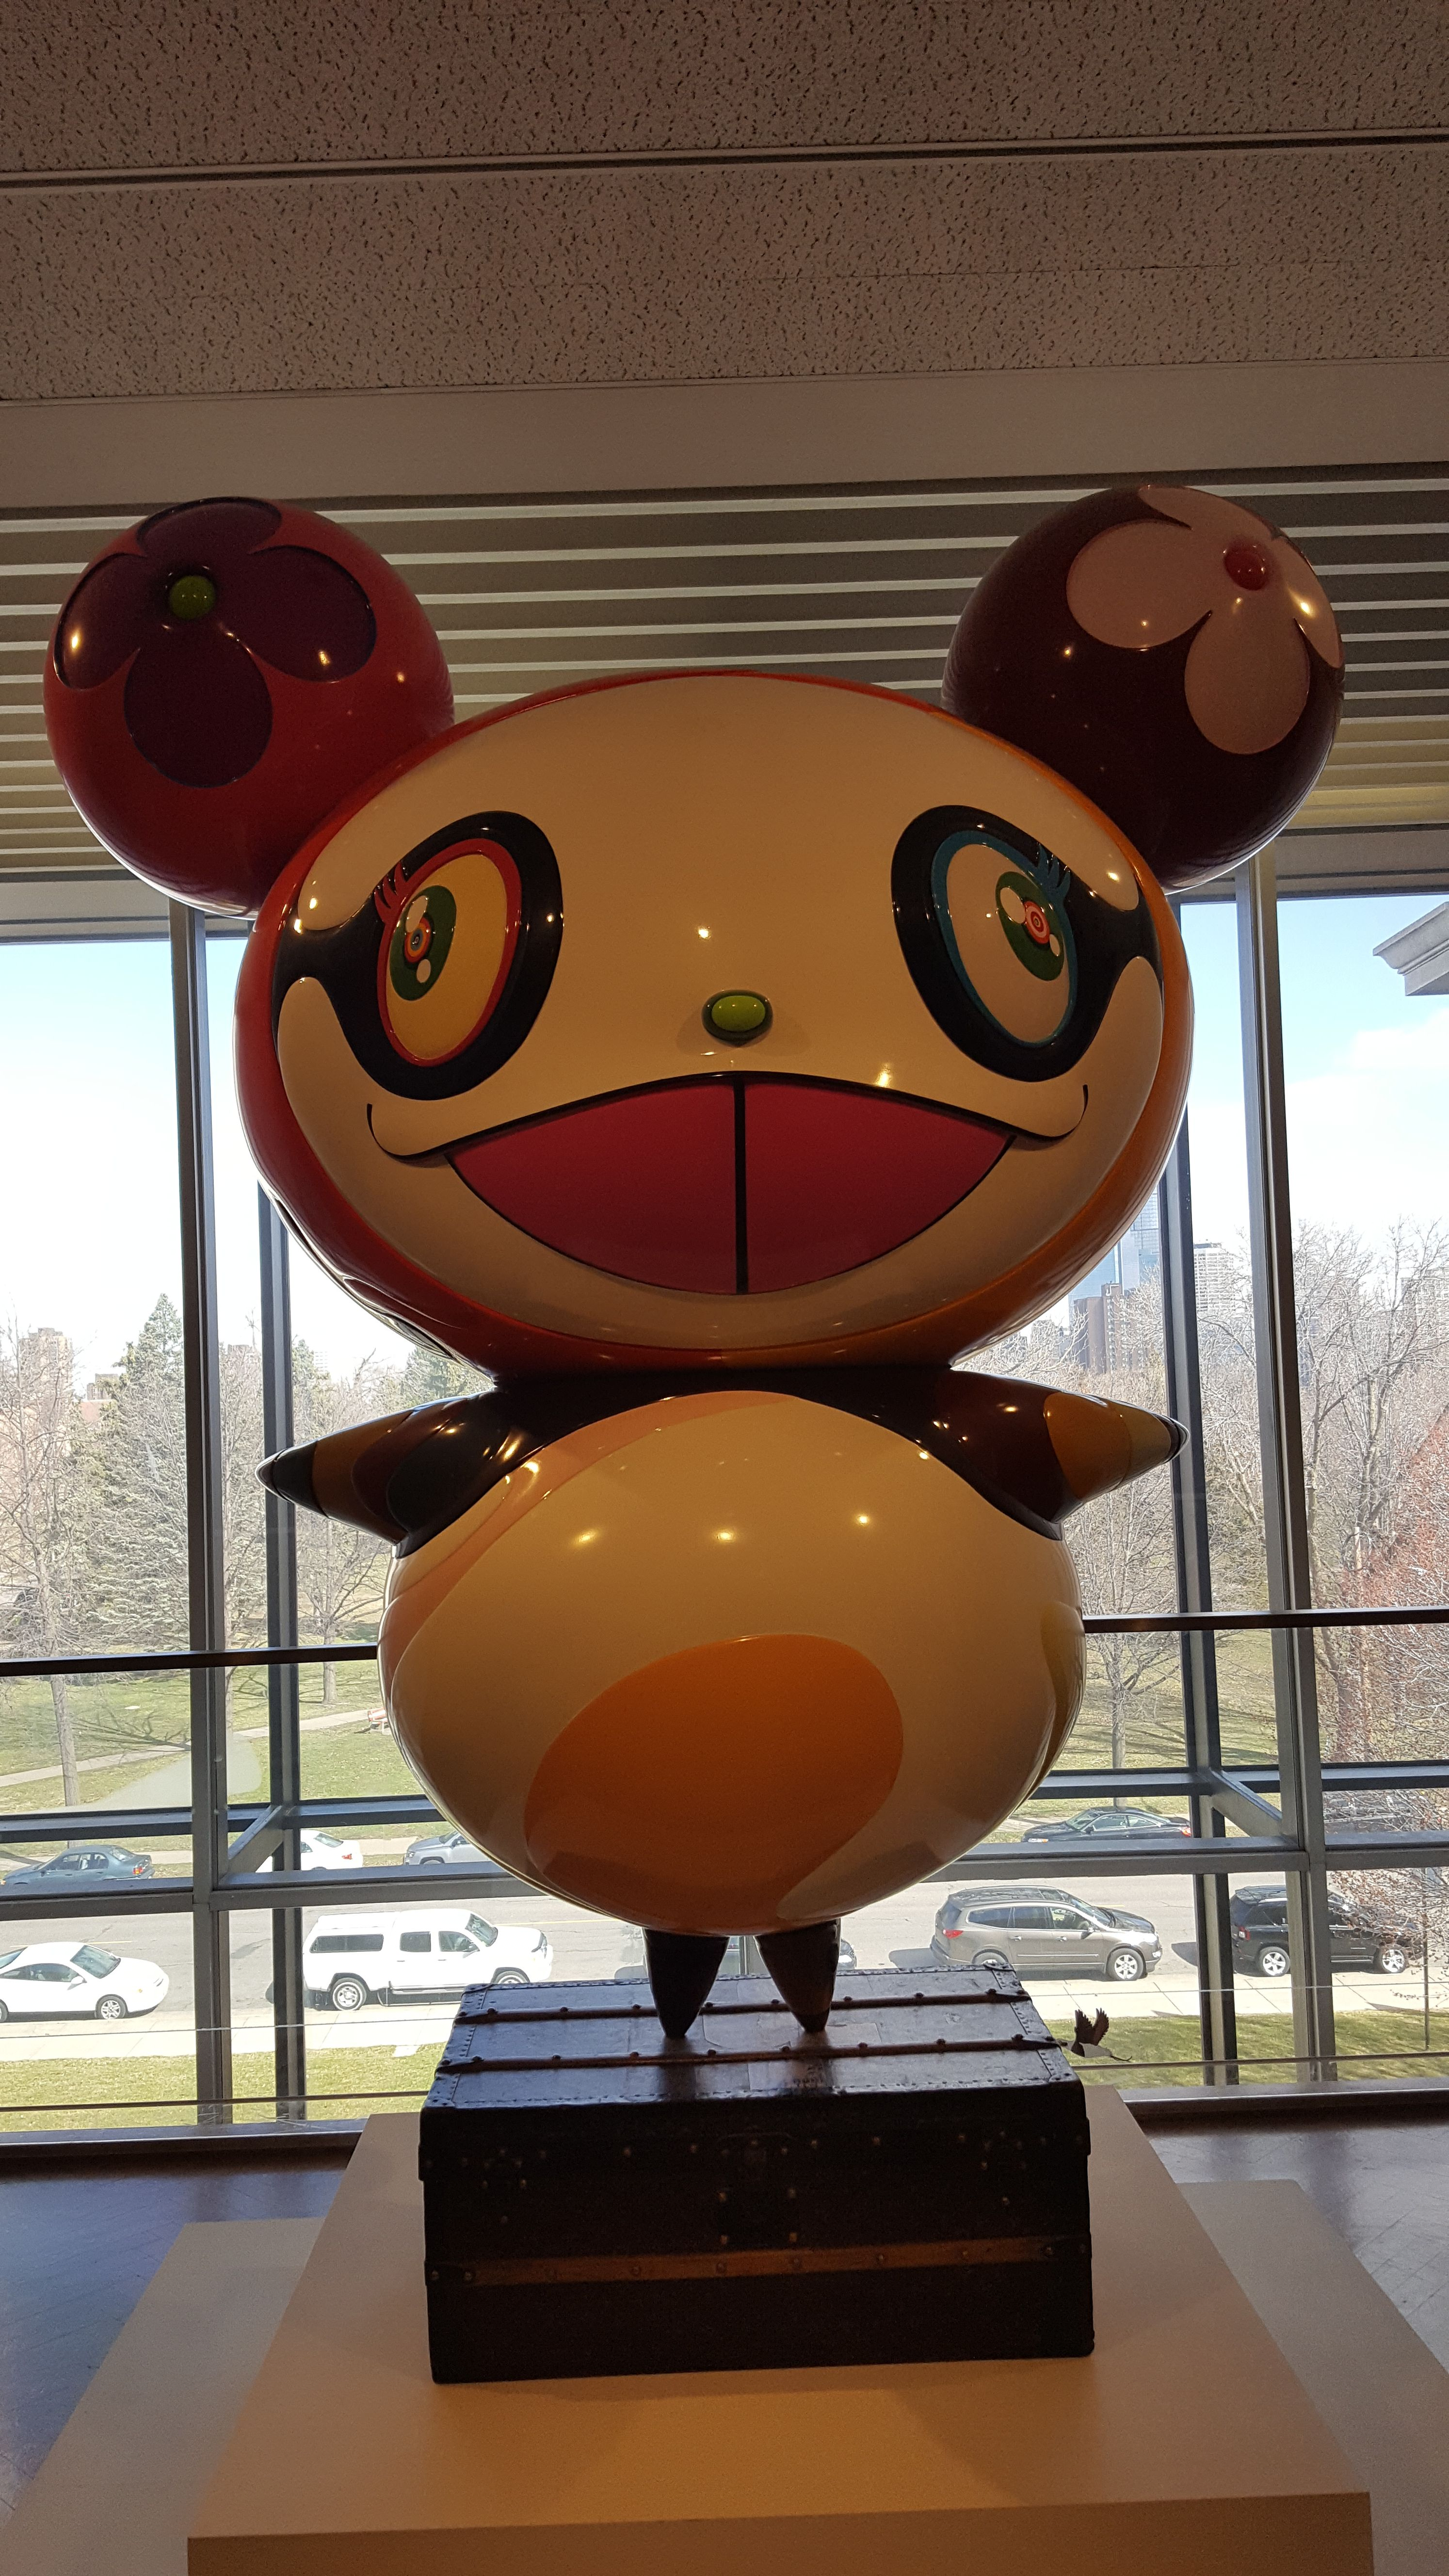 Takashi Murakami-Panda at the Minneapolis Institute of Art | art ...